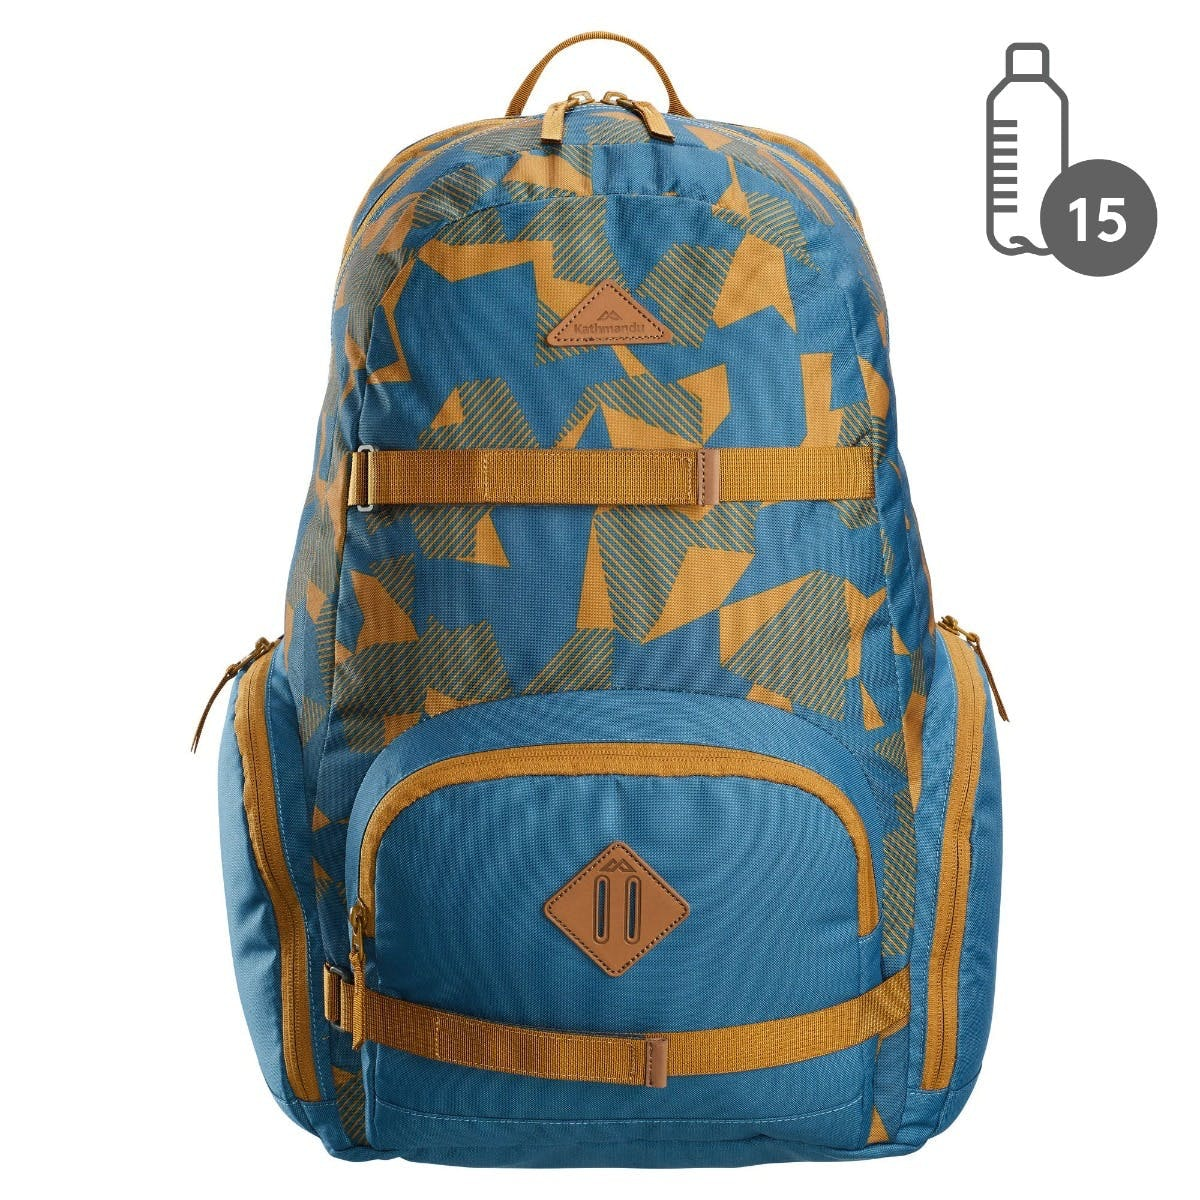 Bag Stores Sydney Everyday Backpack Everyday Carry Bags Handbags Au